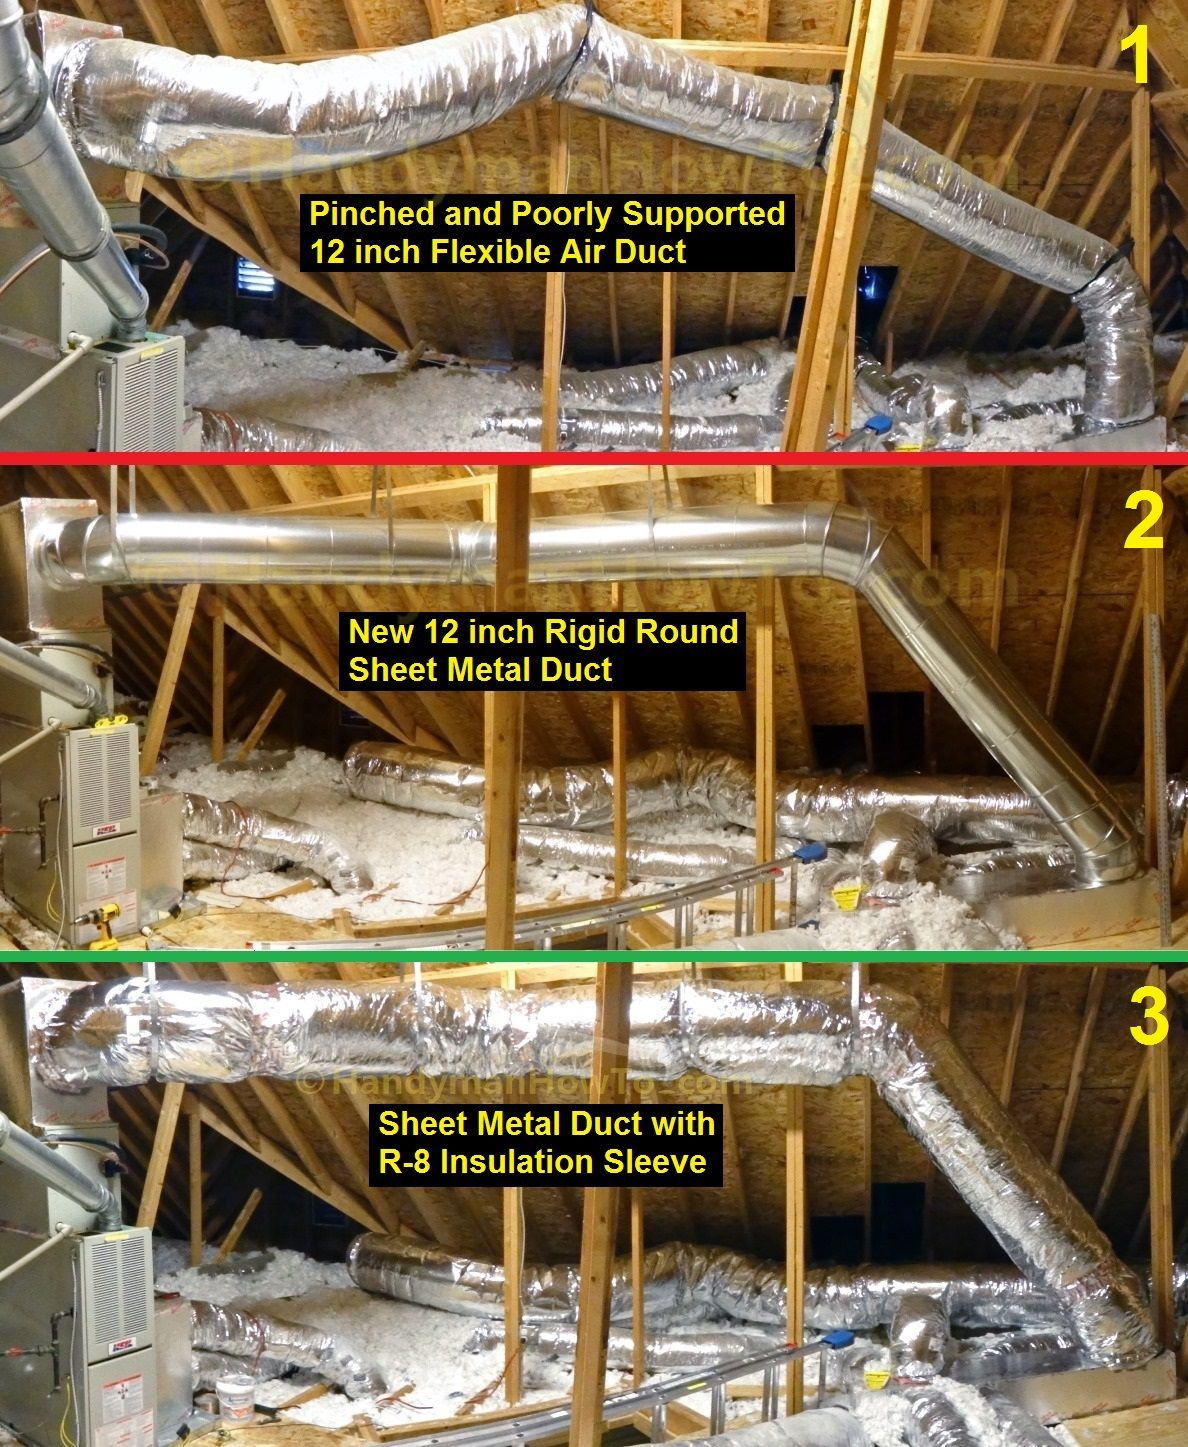 Flexible Air Duct Replacement With Round Sheet Metal Duct Air Duct Insulation Air Duct Attic Renovation